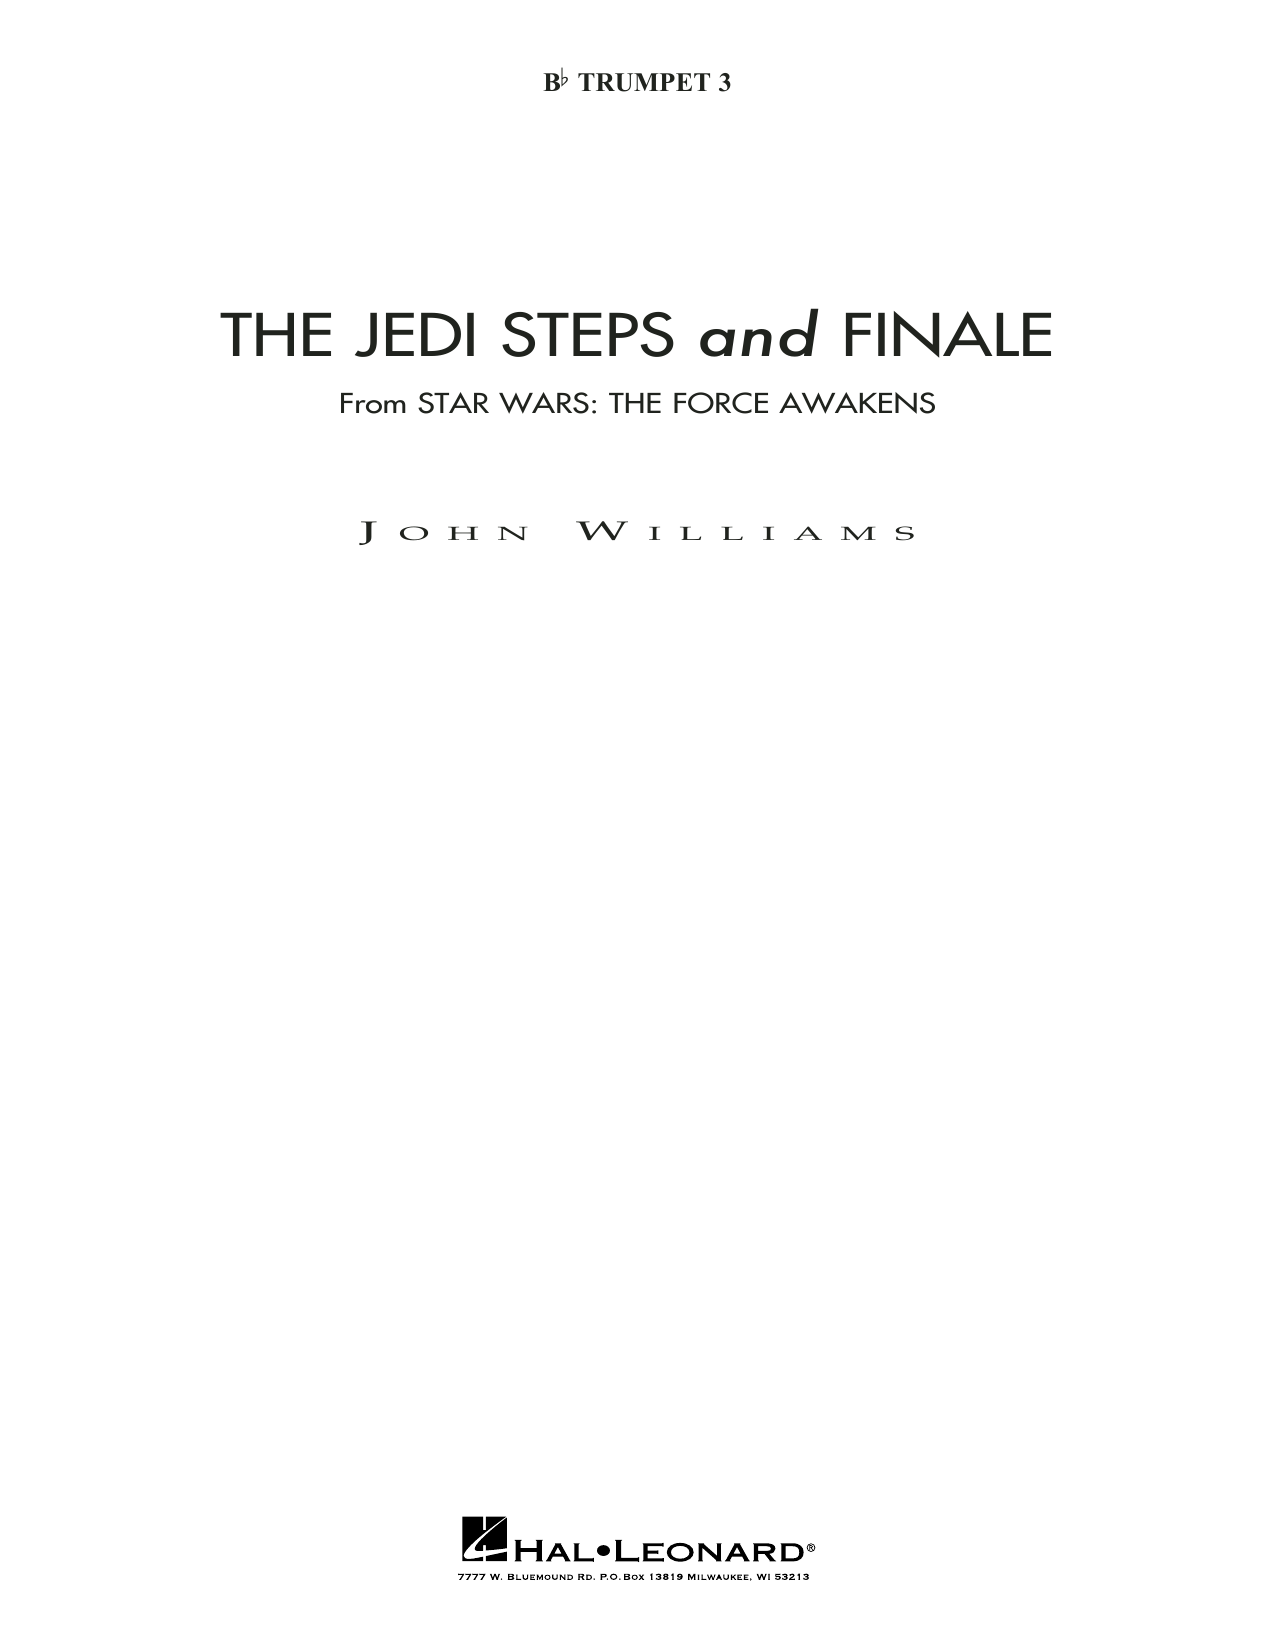 The Jedi Steps and Finale (from Star Wars: The Force Awakens) - Bb Trumpet 3 (sub. C Tpt. 3) (Concert Band)